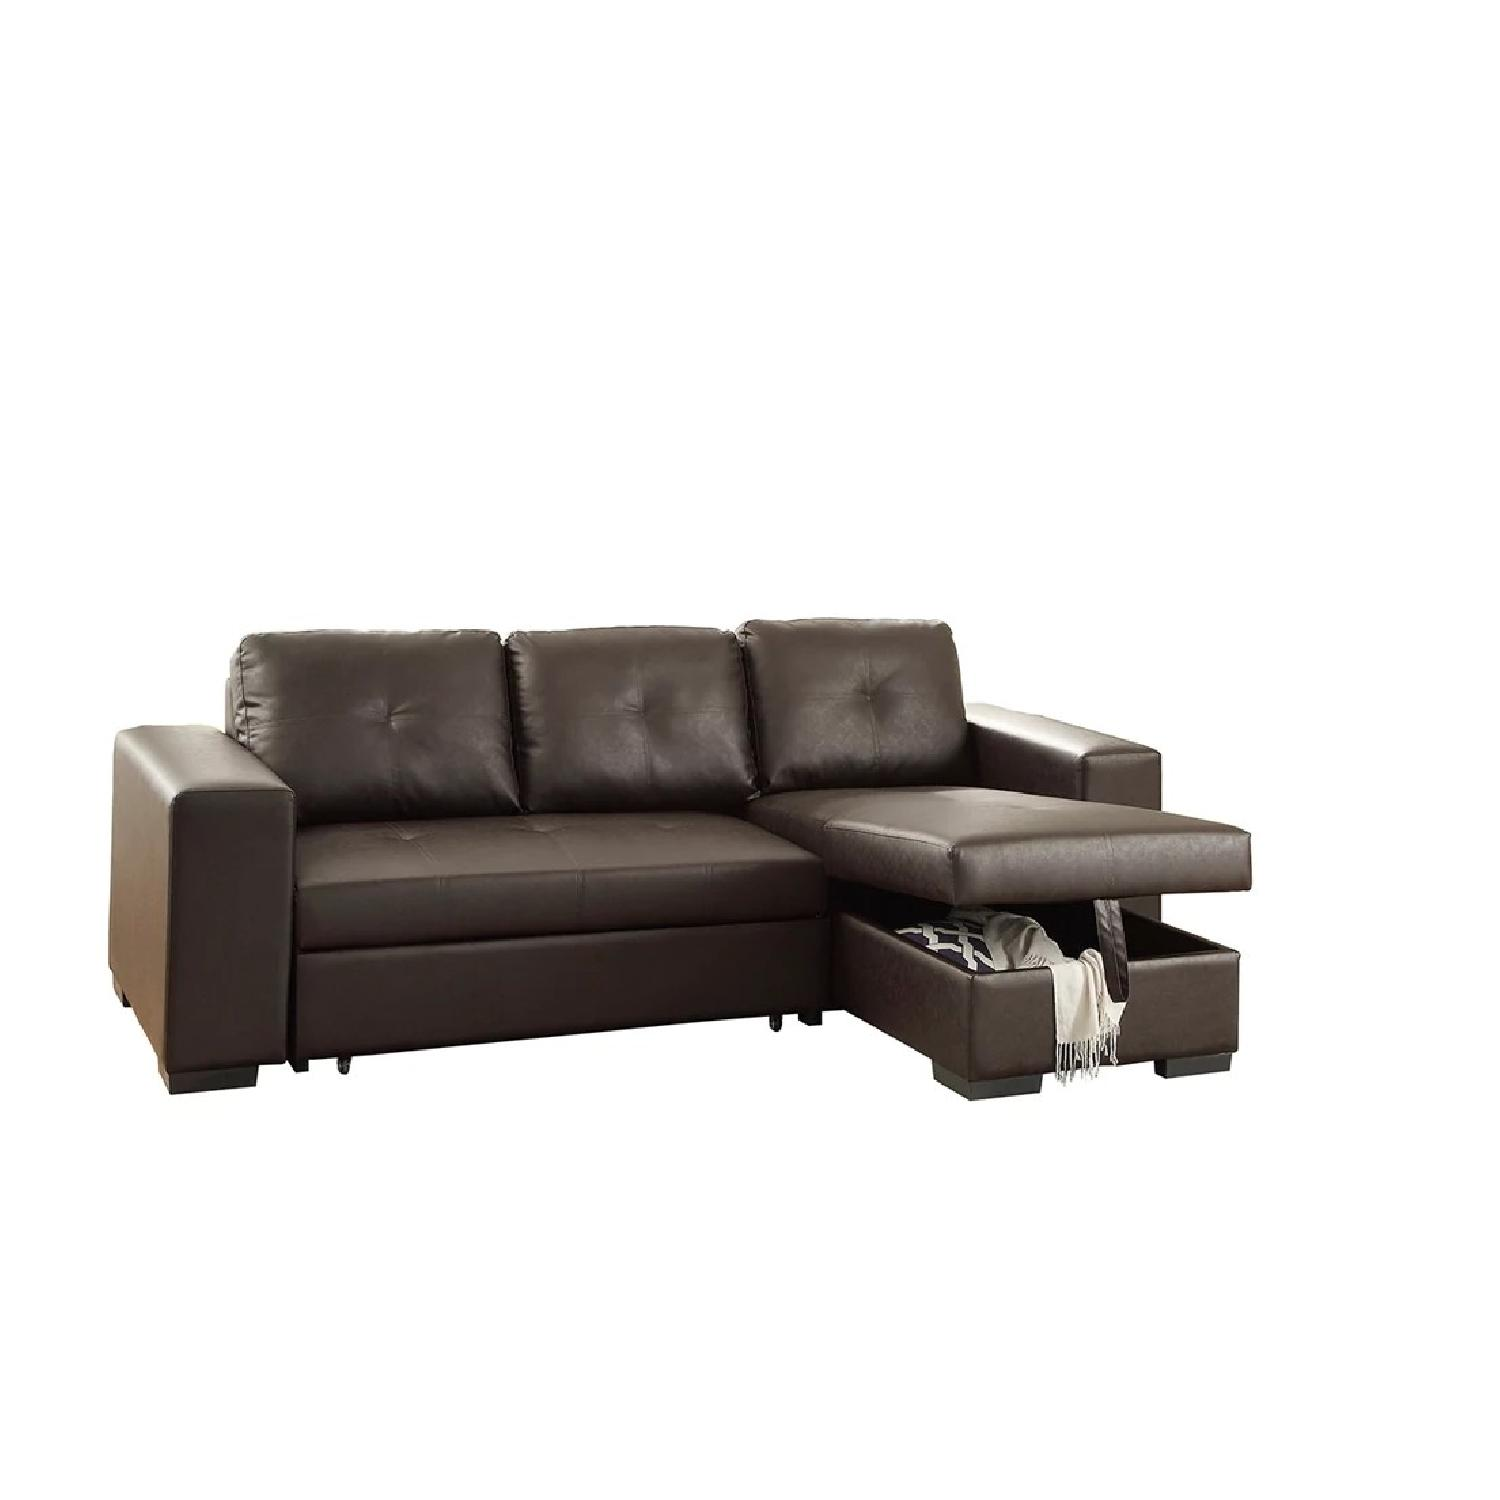 Convertible Espresso Leather Sectional Sofa w/ Storage